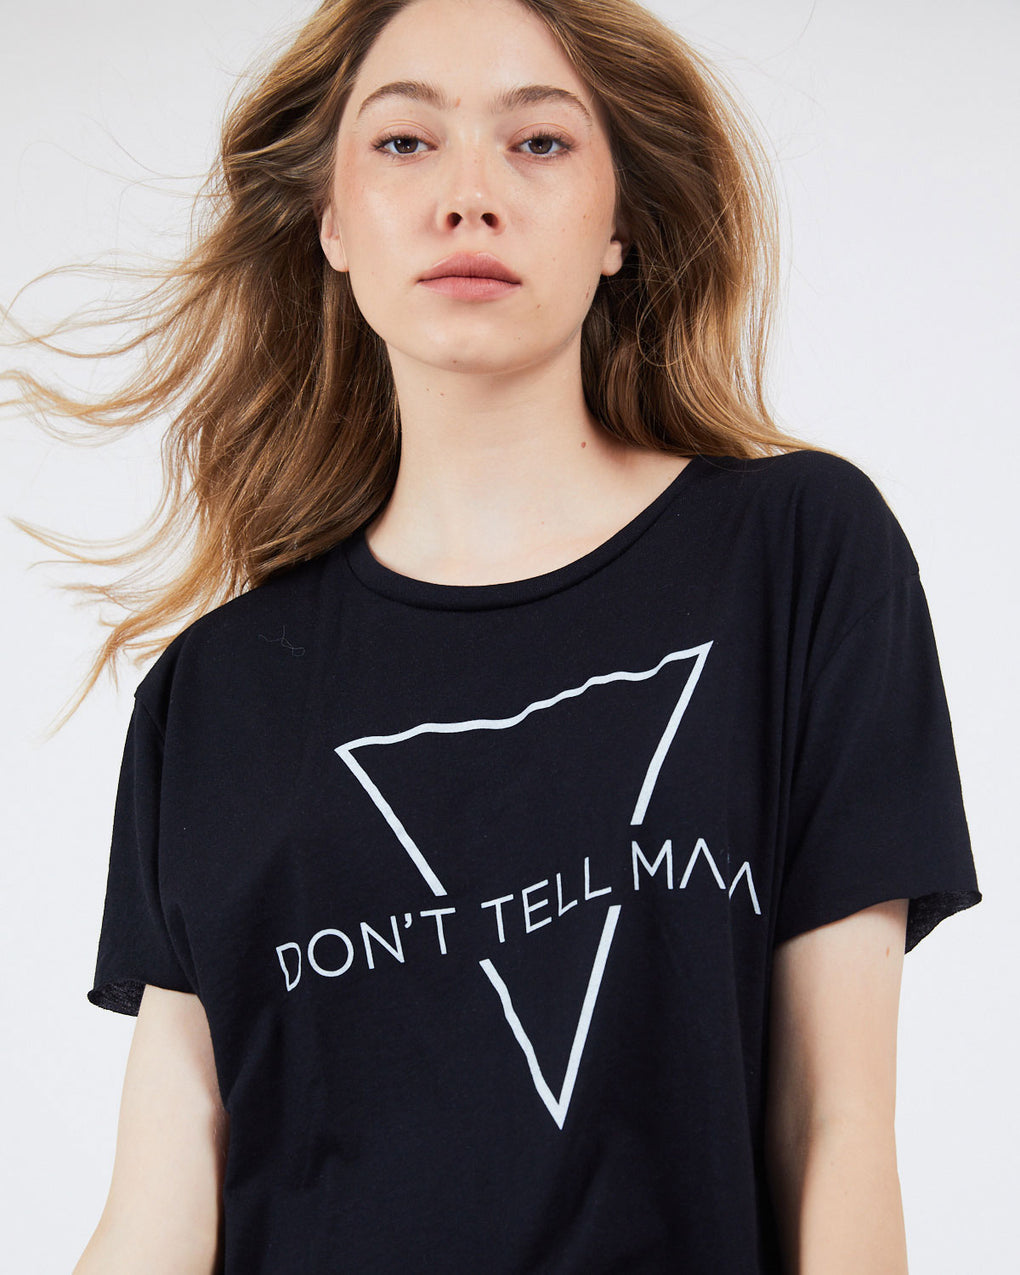 TRIANGLE T-SHIRT - Don't Tell Mama Studio